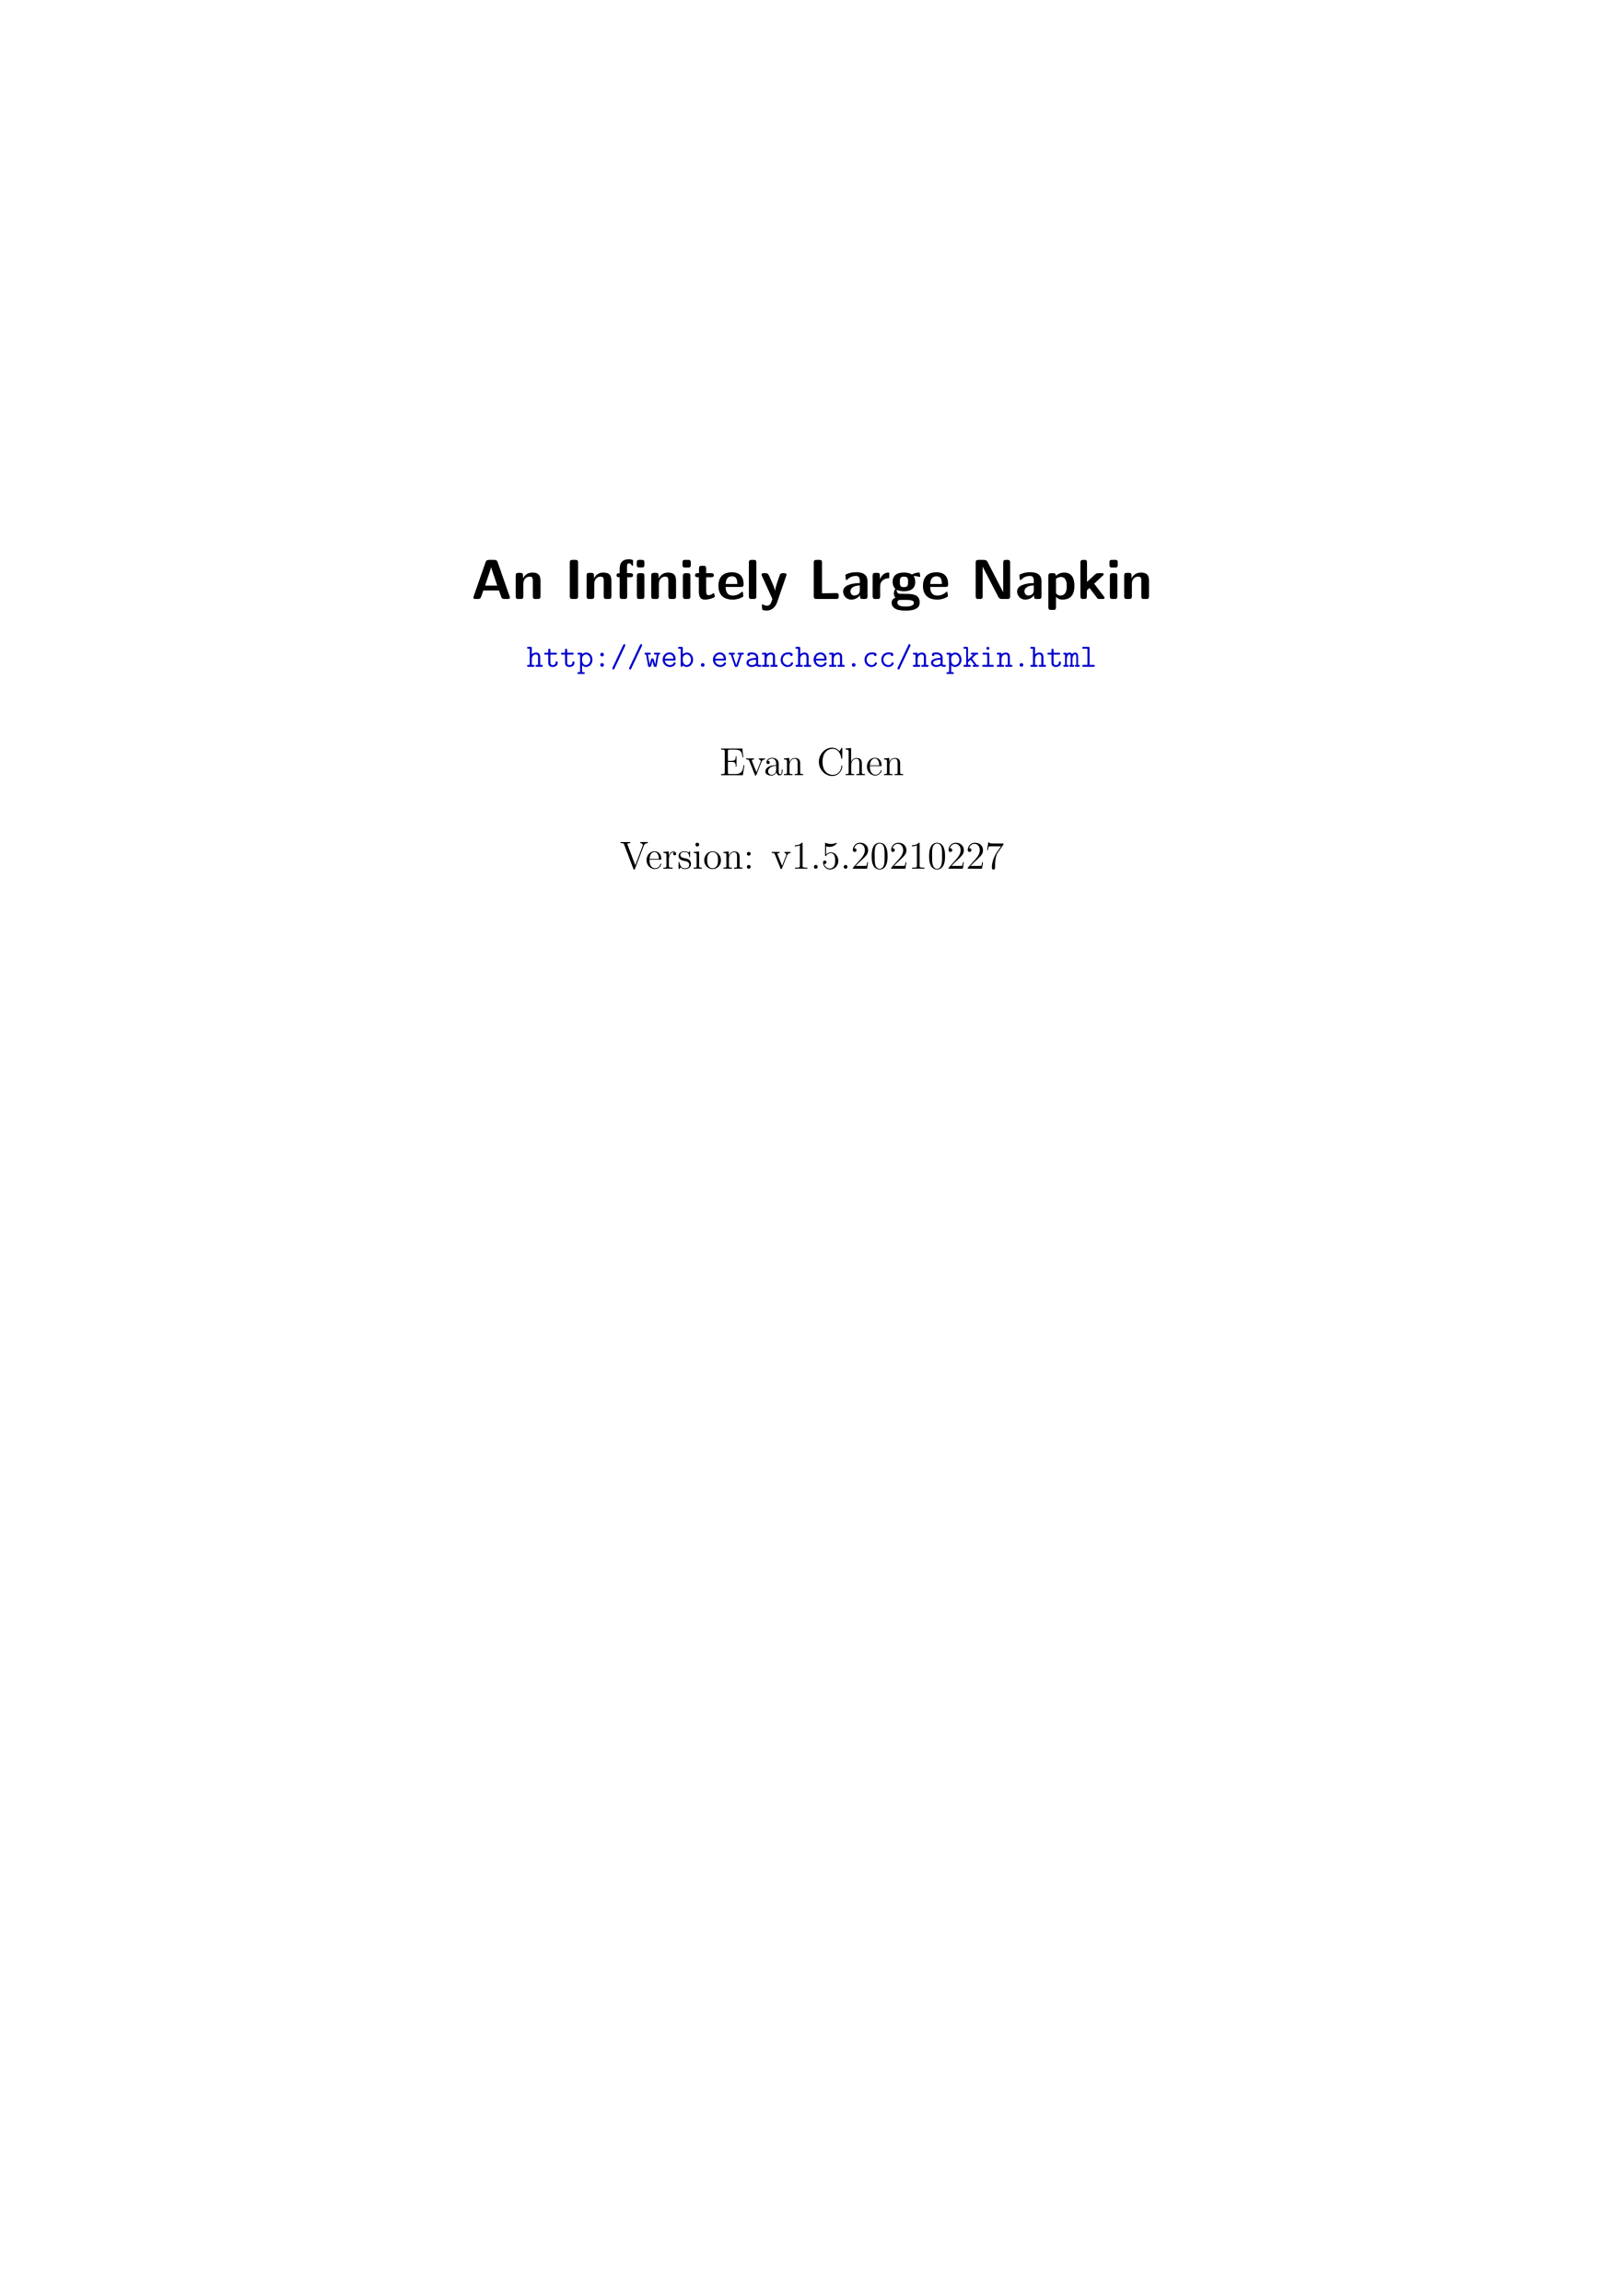 陈谊廷 LaTeX 排版的《An Infinitely Large Napkin》